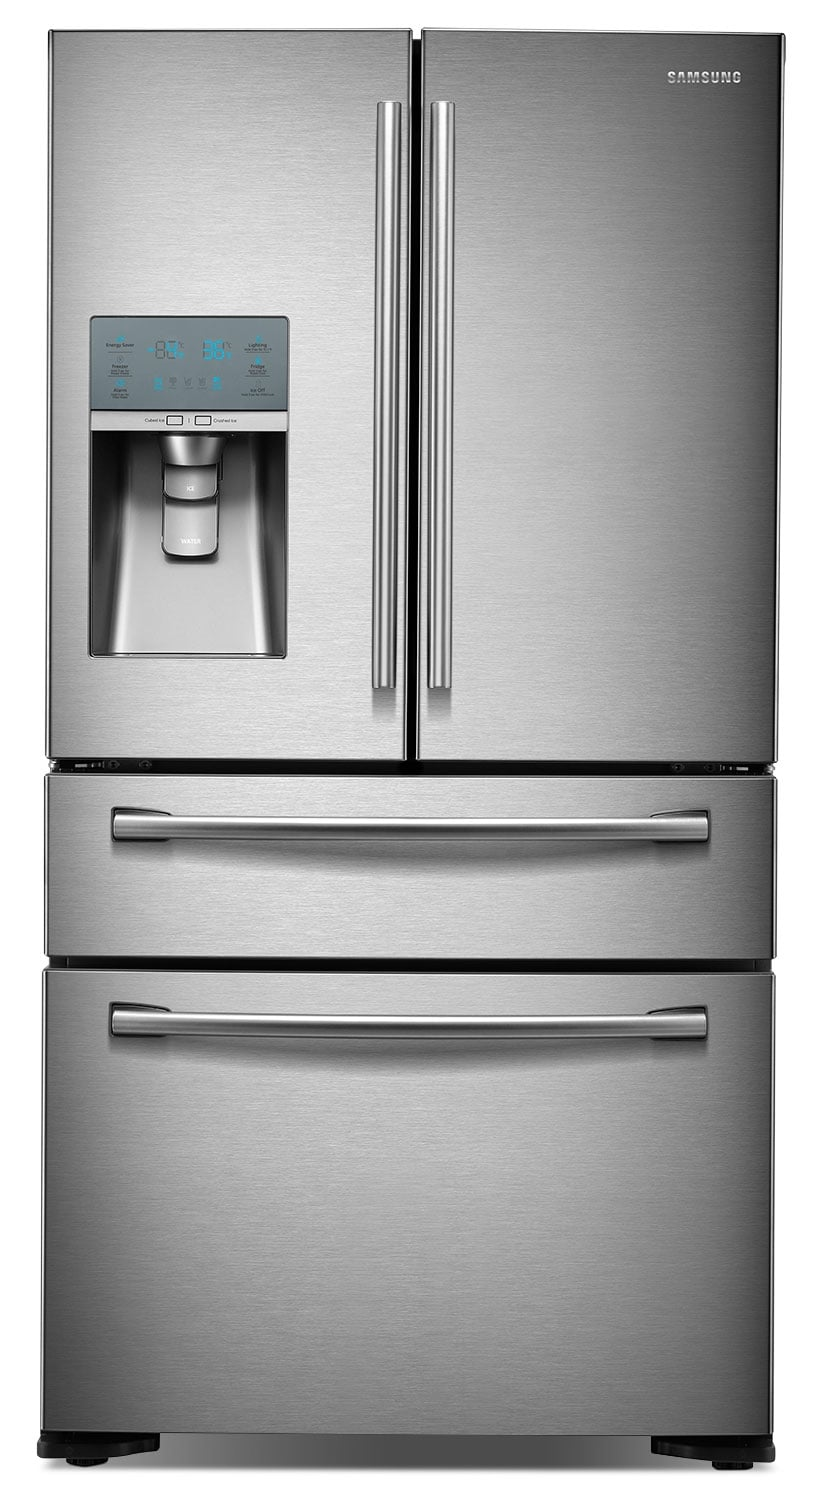 Refrigerators and Freezers - Samsung 23.61 Cu Ft. French-Door Refrigerator – Stainless Steel